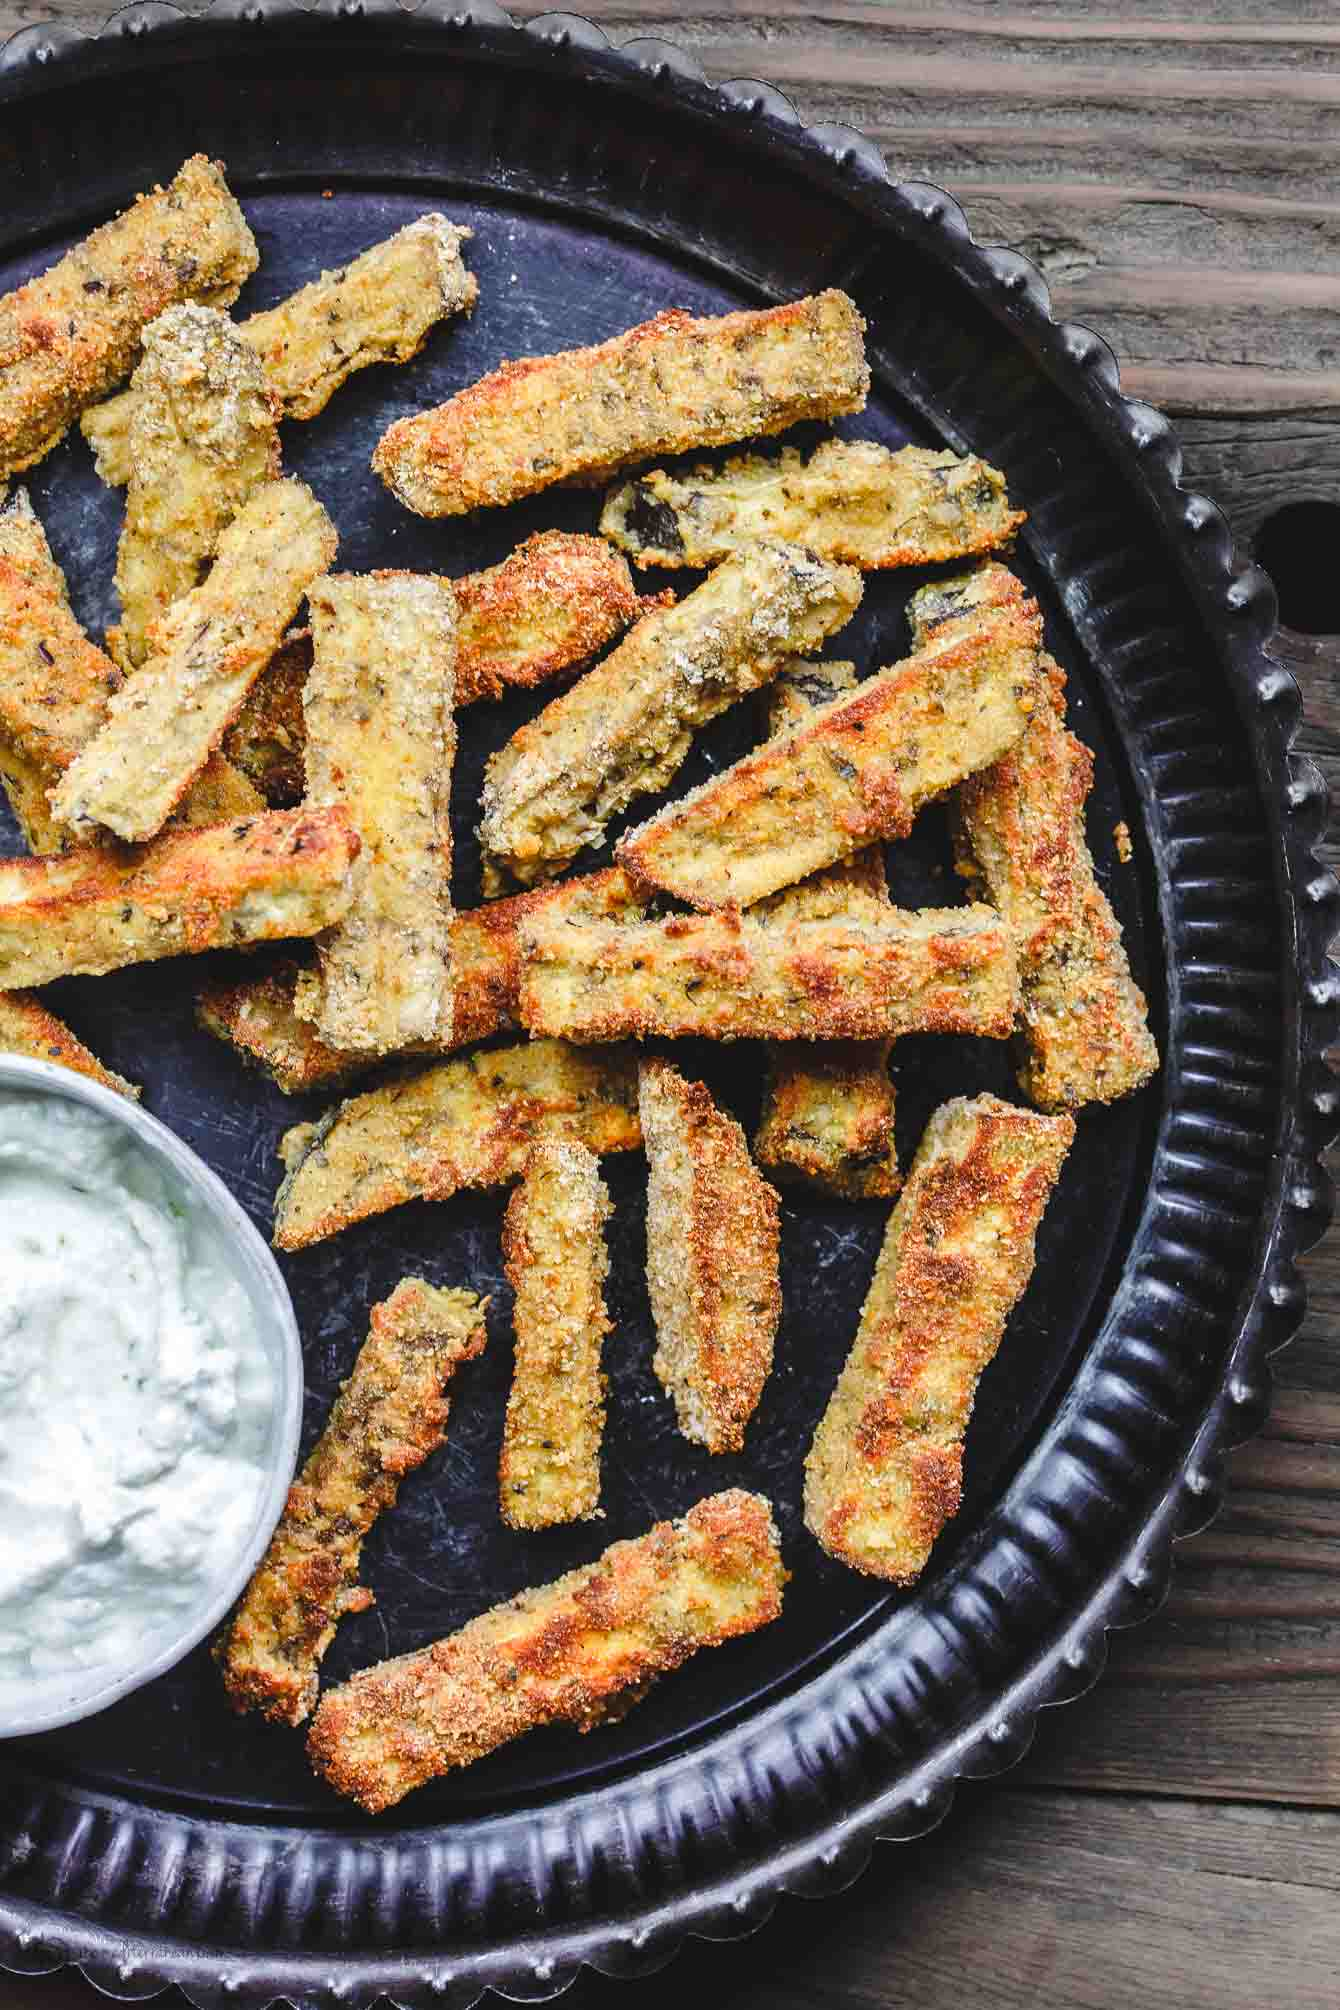 Plate with crispy, baked eggplant fries served with Greek Tzatziki Sauce